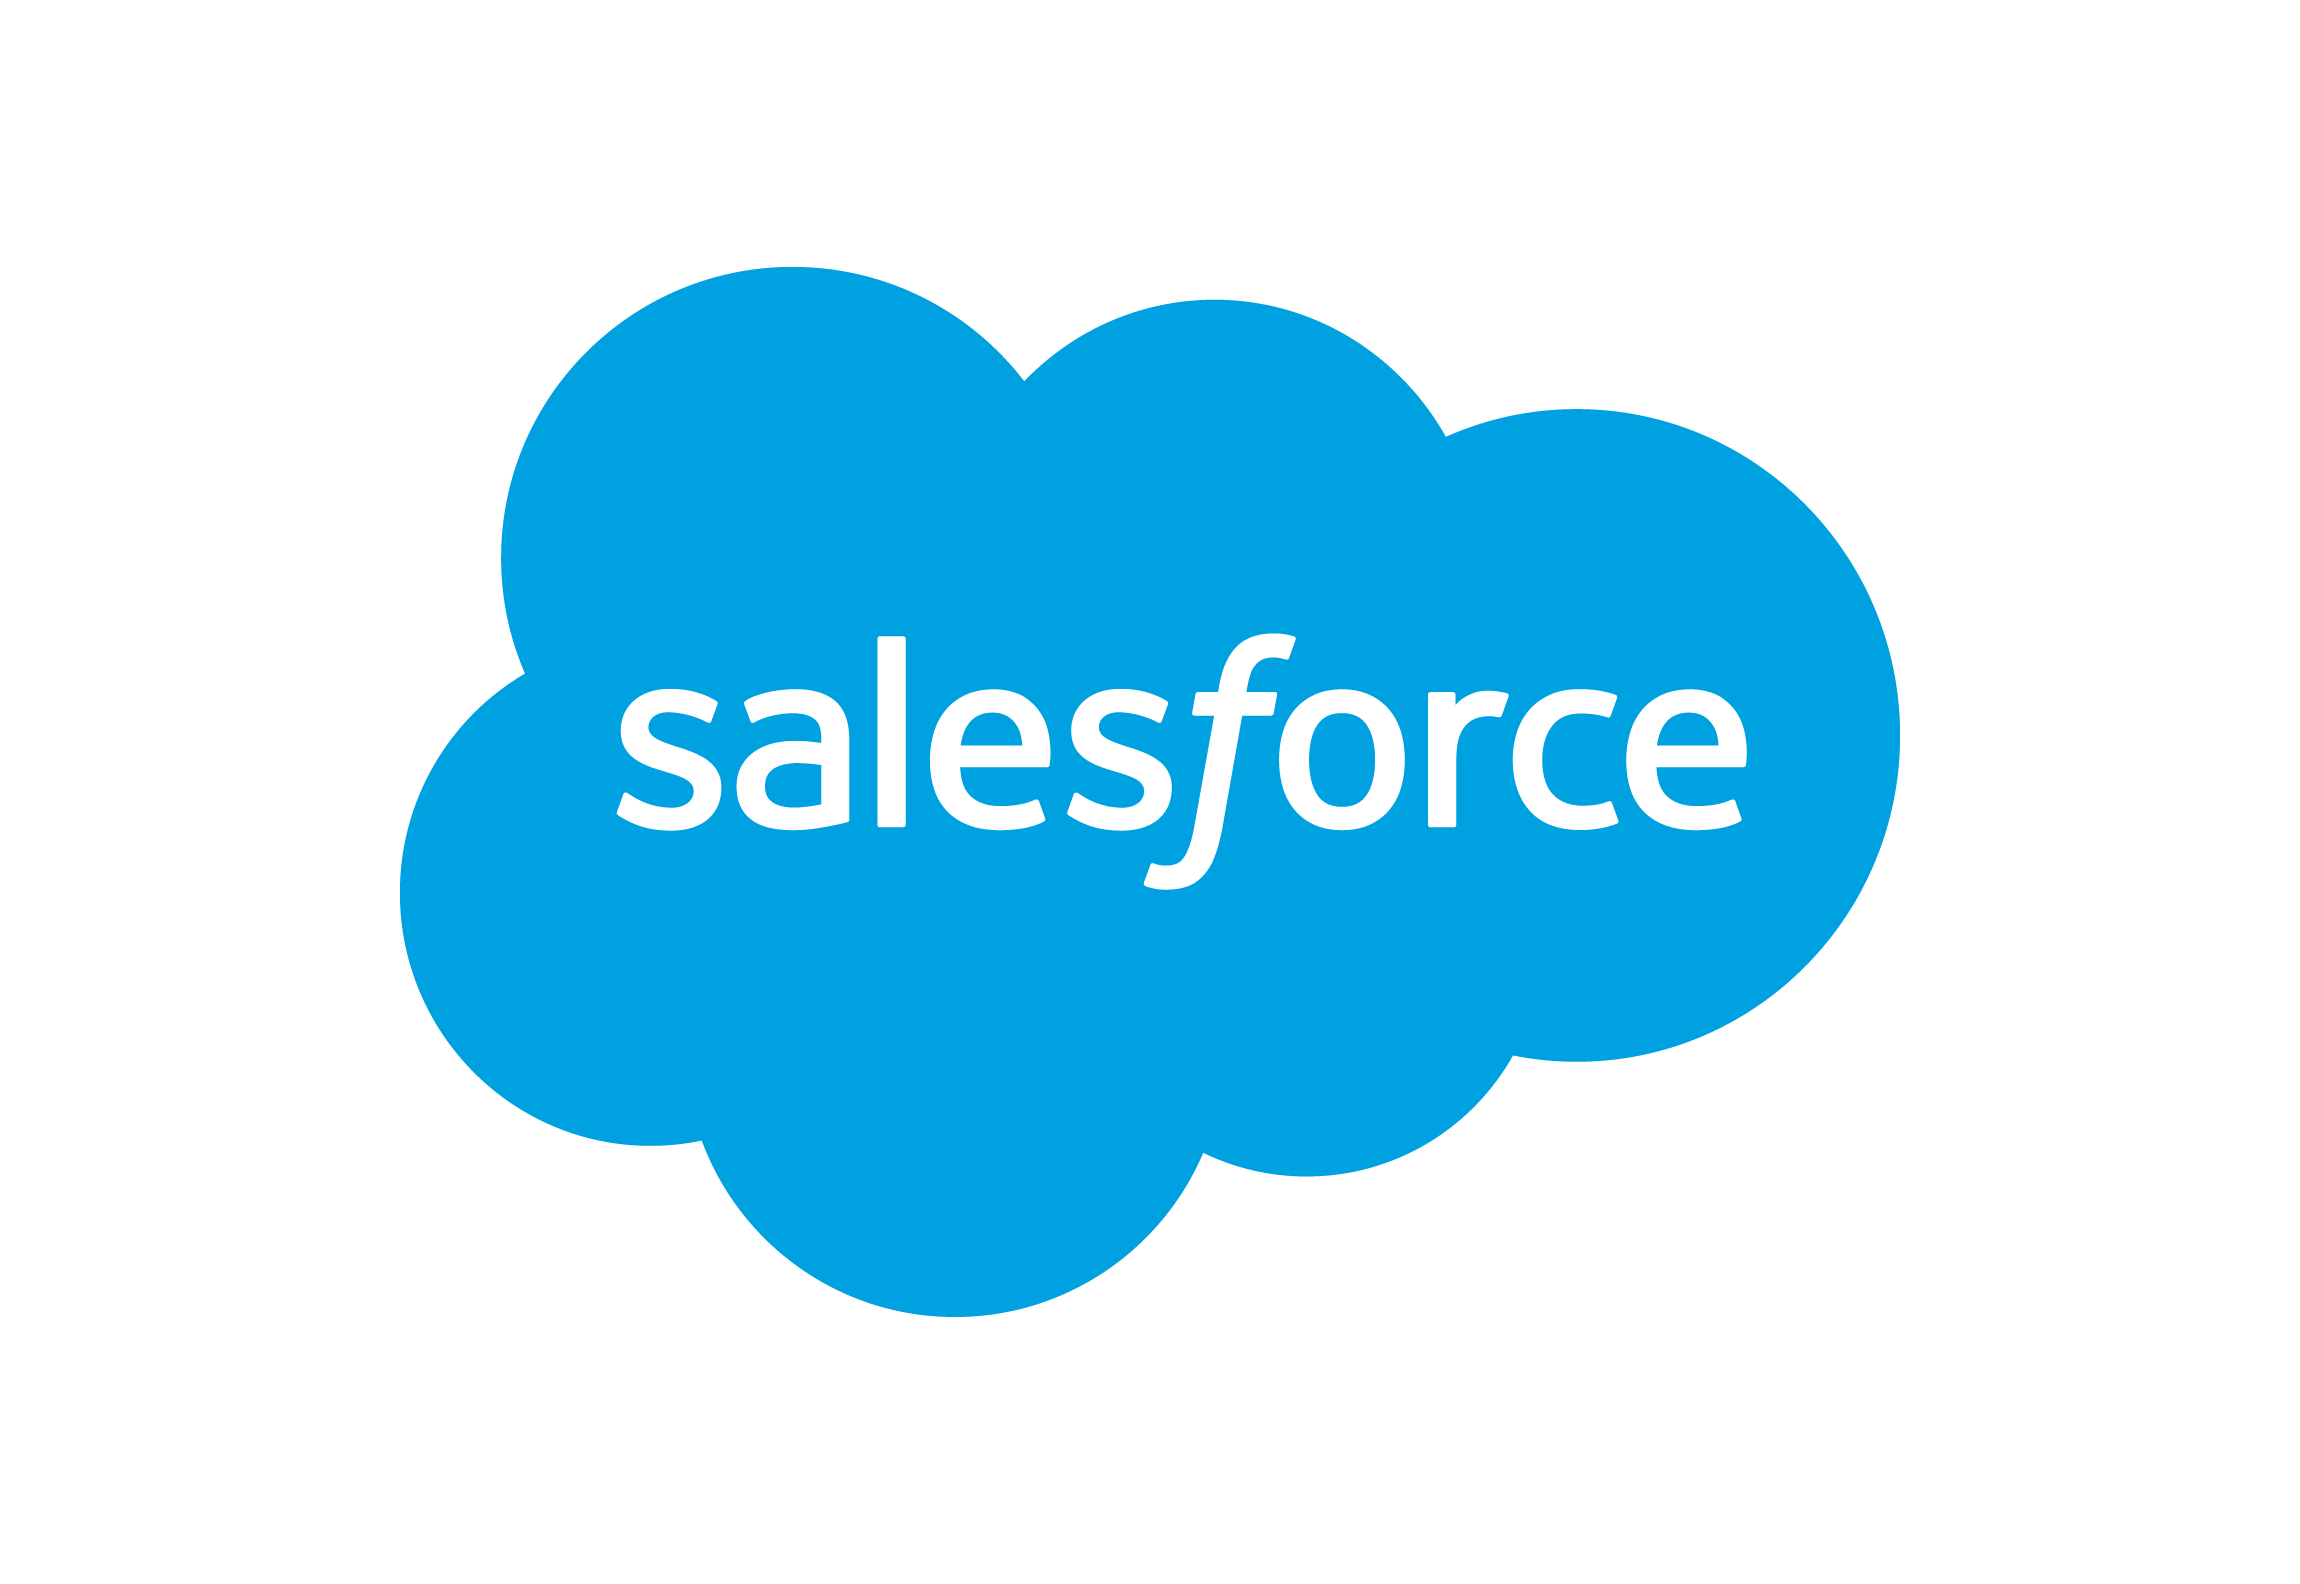 salesforce.